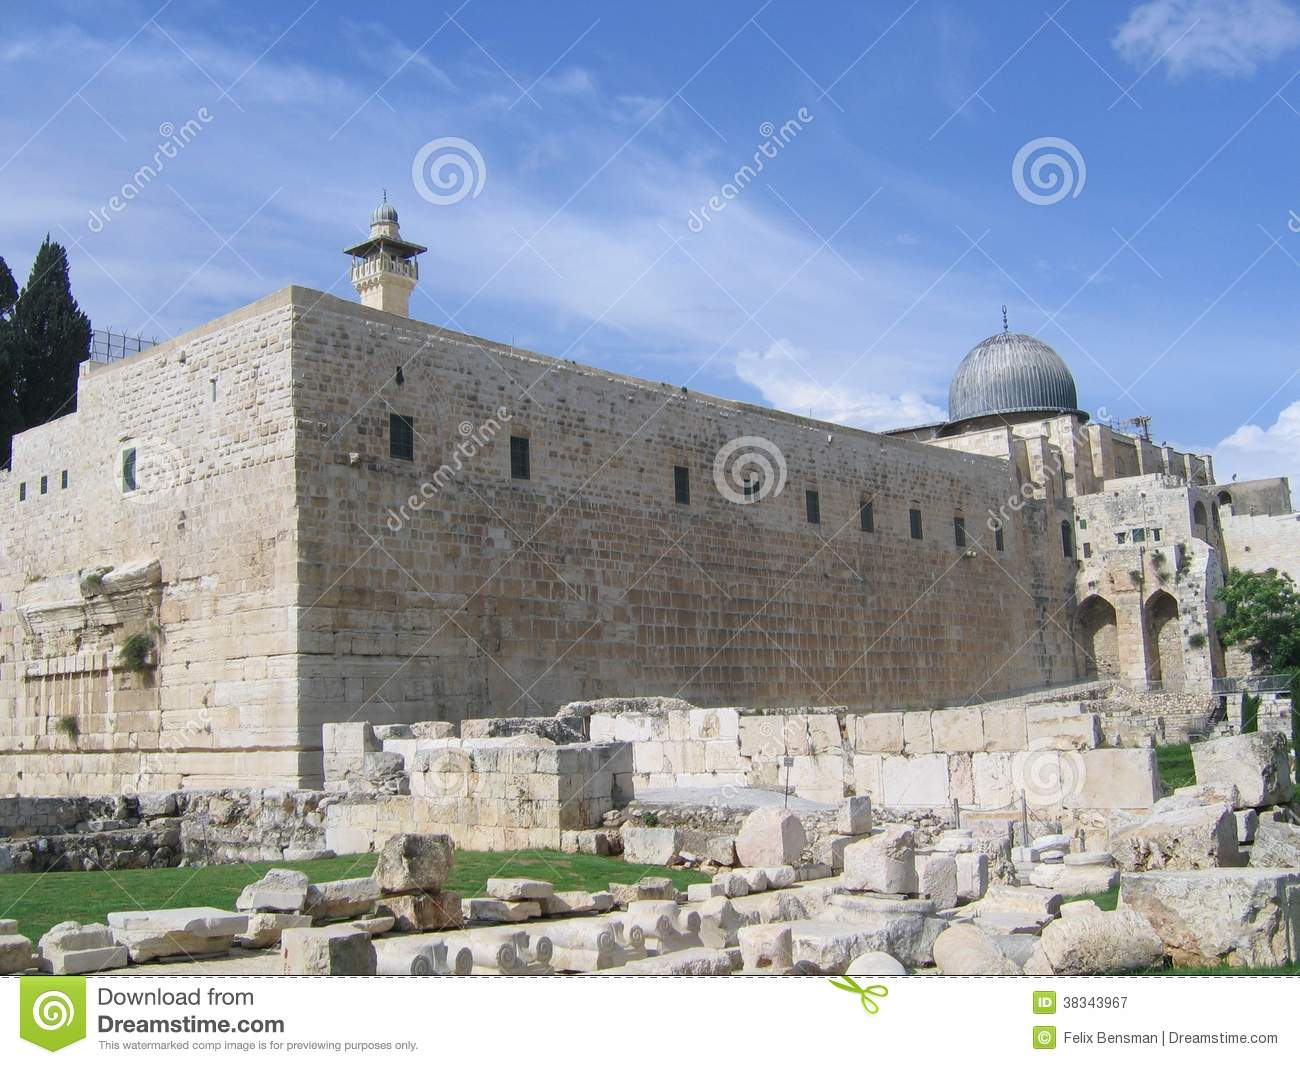 two holy places for the muslim The colonialist crimes of islam  islam erased native cultures and converted holy places into mosques  below is a list of non-muslim holy sites,.